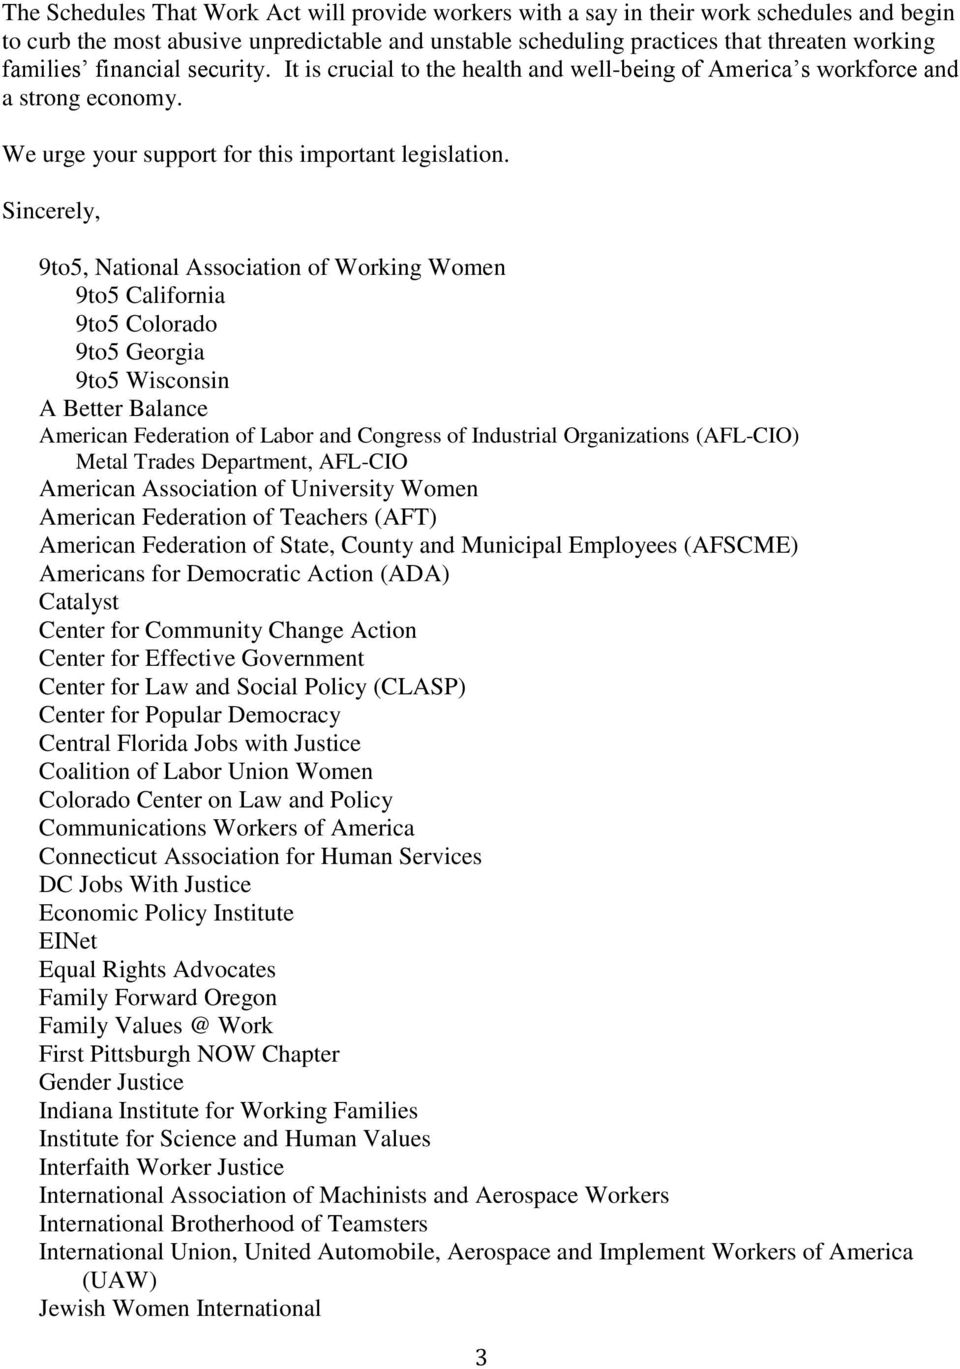 Sincerely, 9to5, National Association of Working Women 9to5 California 9to5 Colorado 9to5 Georgia 9to5 Wisconsin A Better Balance American Federation of Labor and Congress of Industrial Organizations